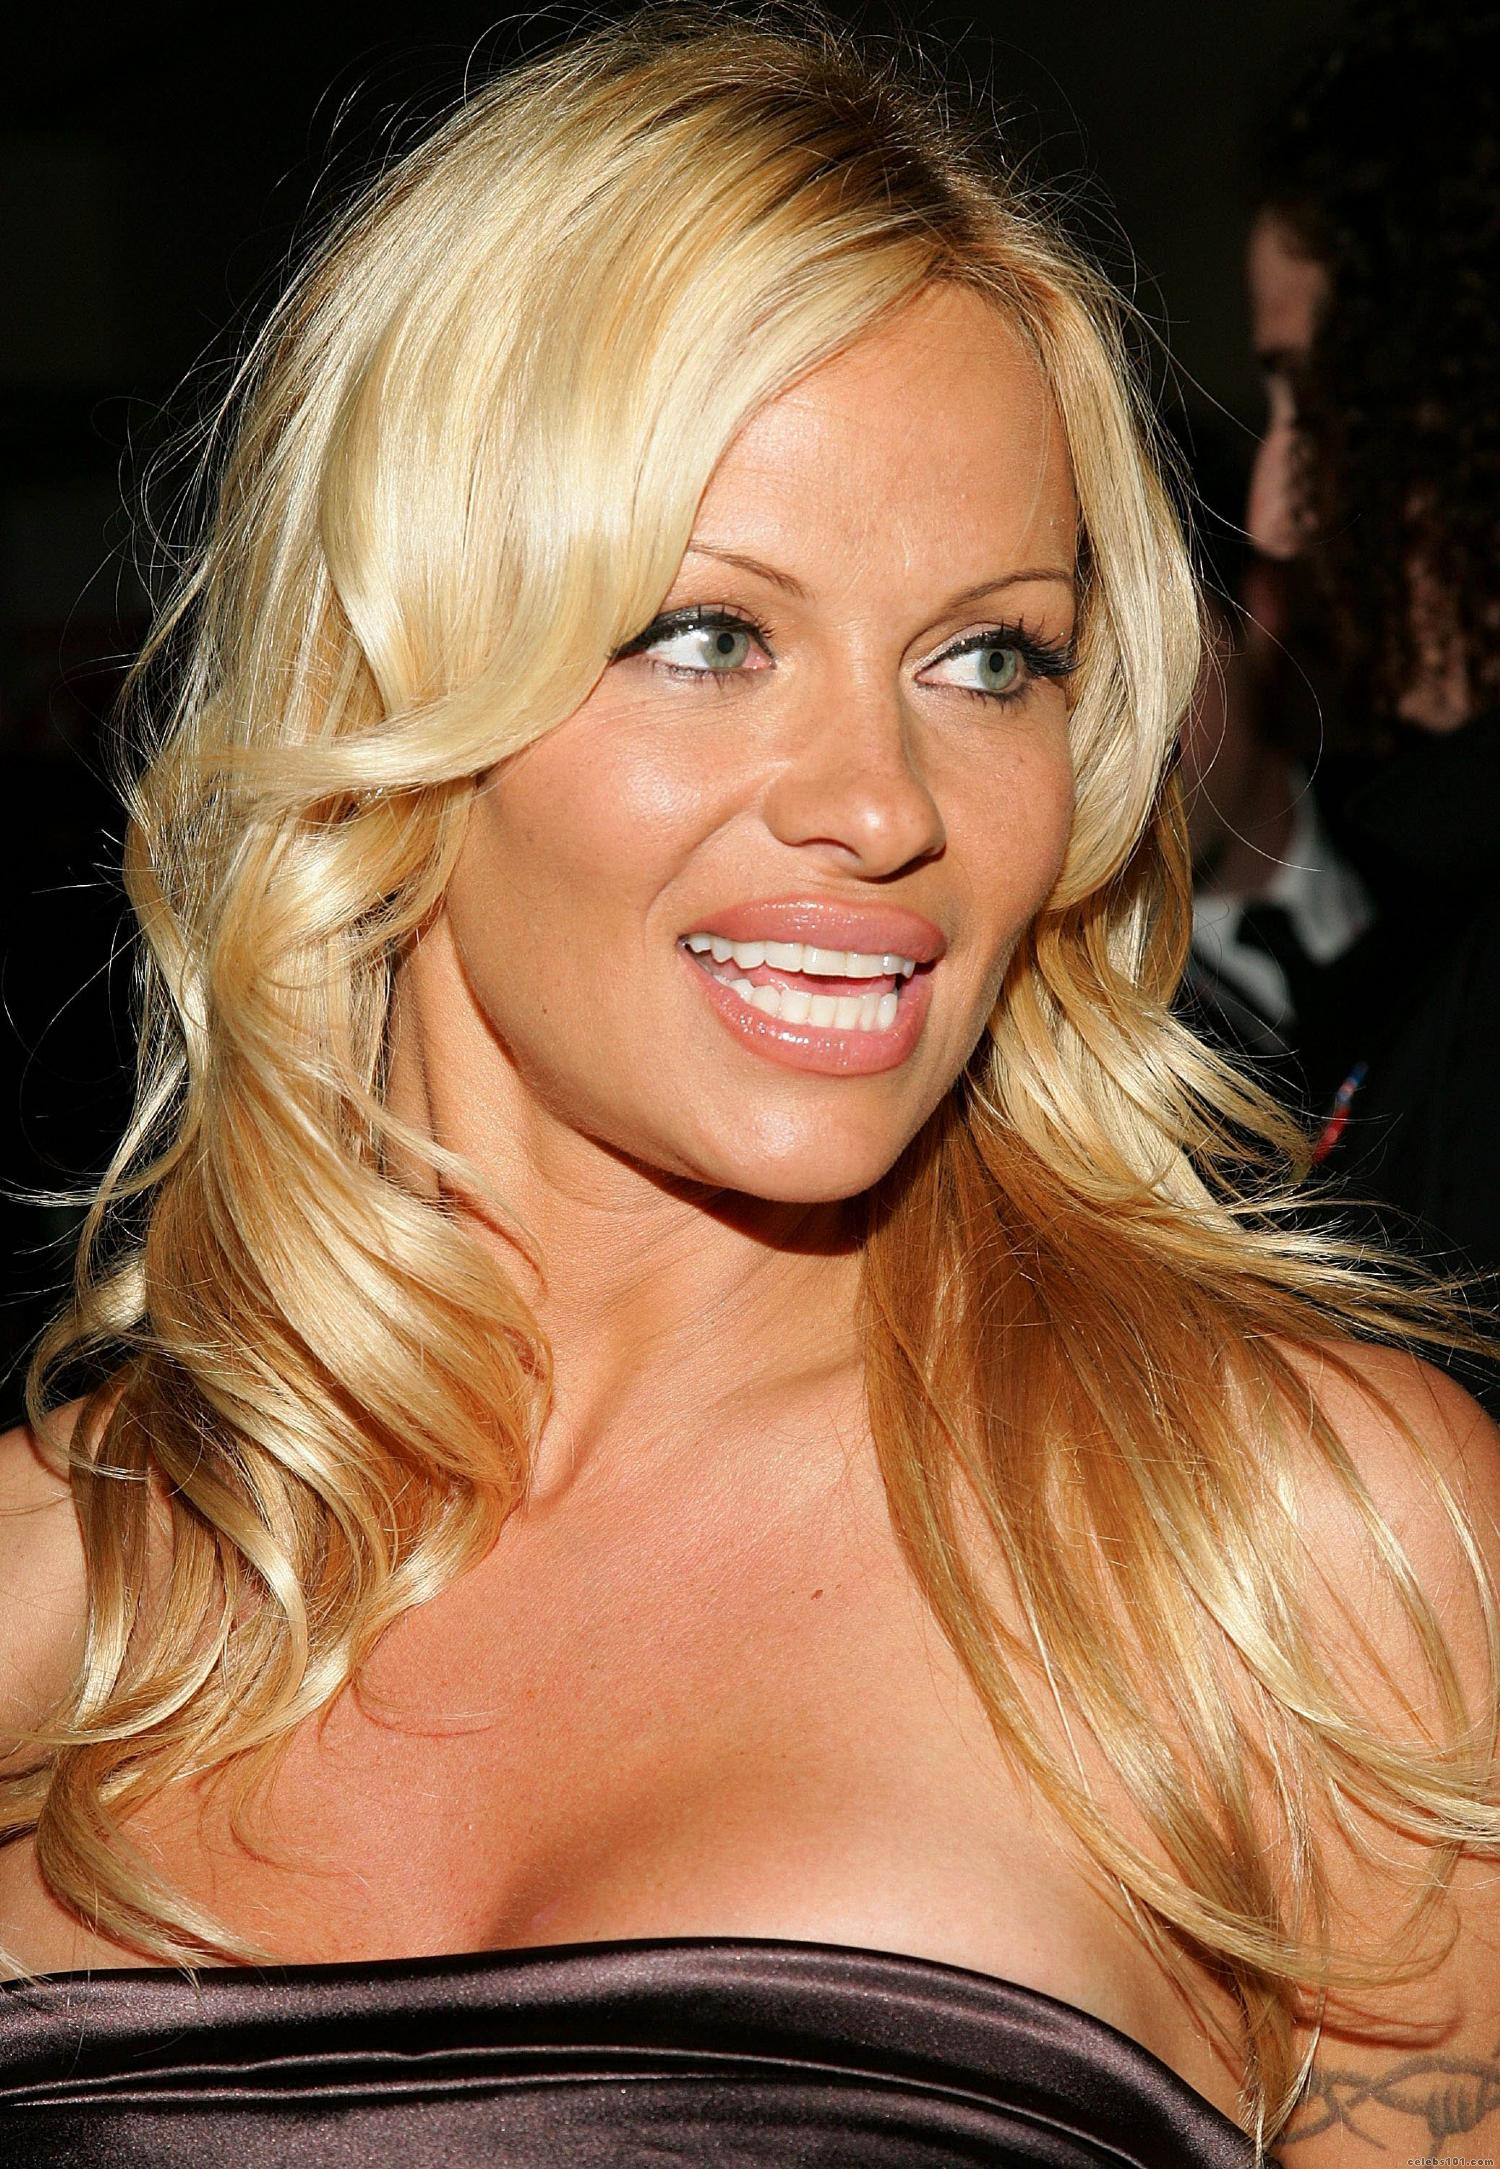 pamela anderson huge post x 27pics mq lq shoots and candids caps collages wallpapers. Black Bedroom Furniture Sets. Home Design Ideas